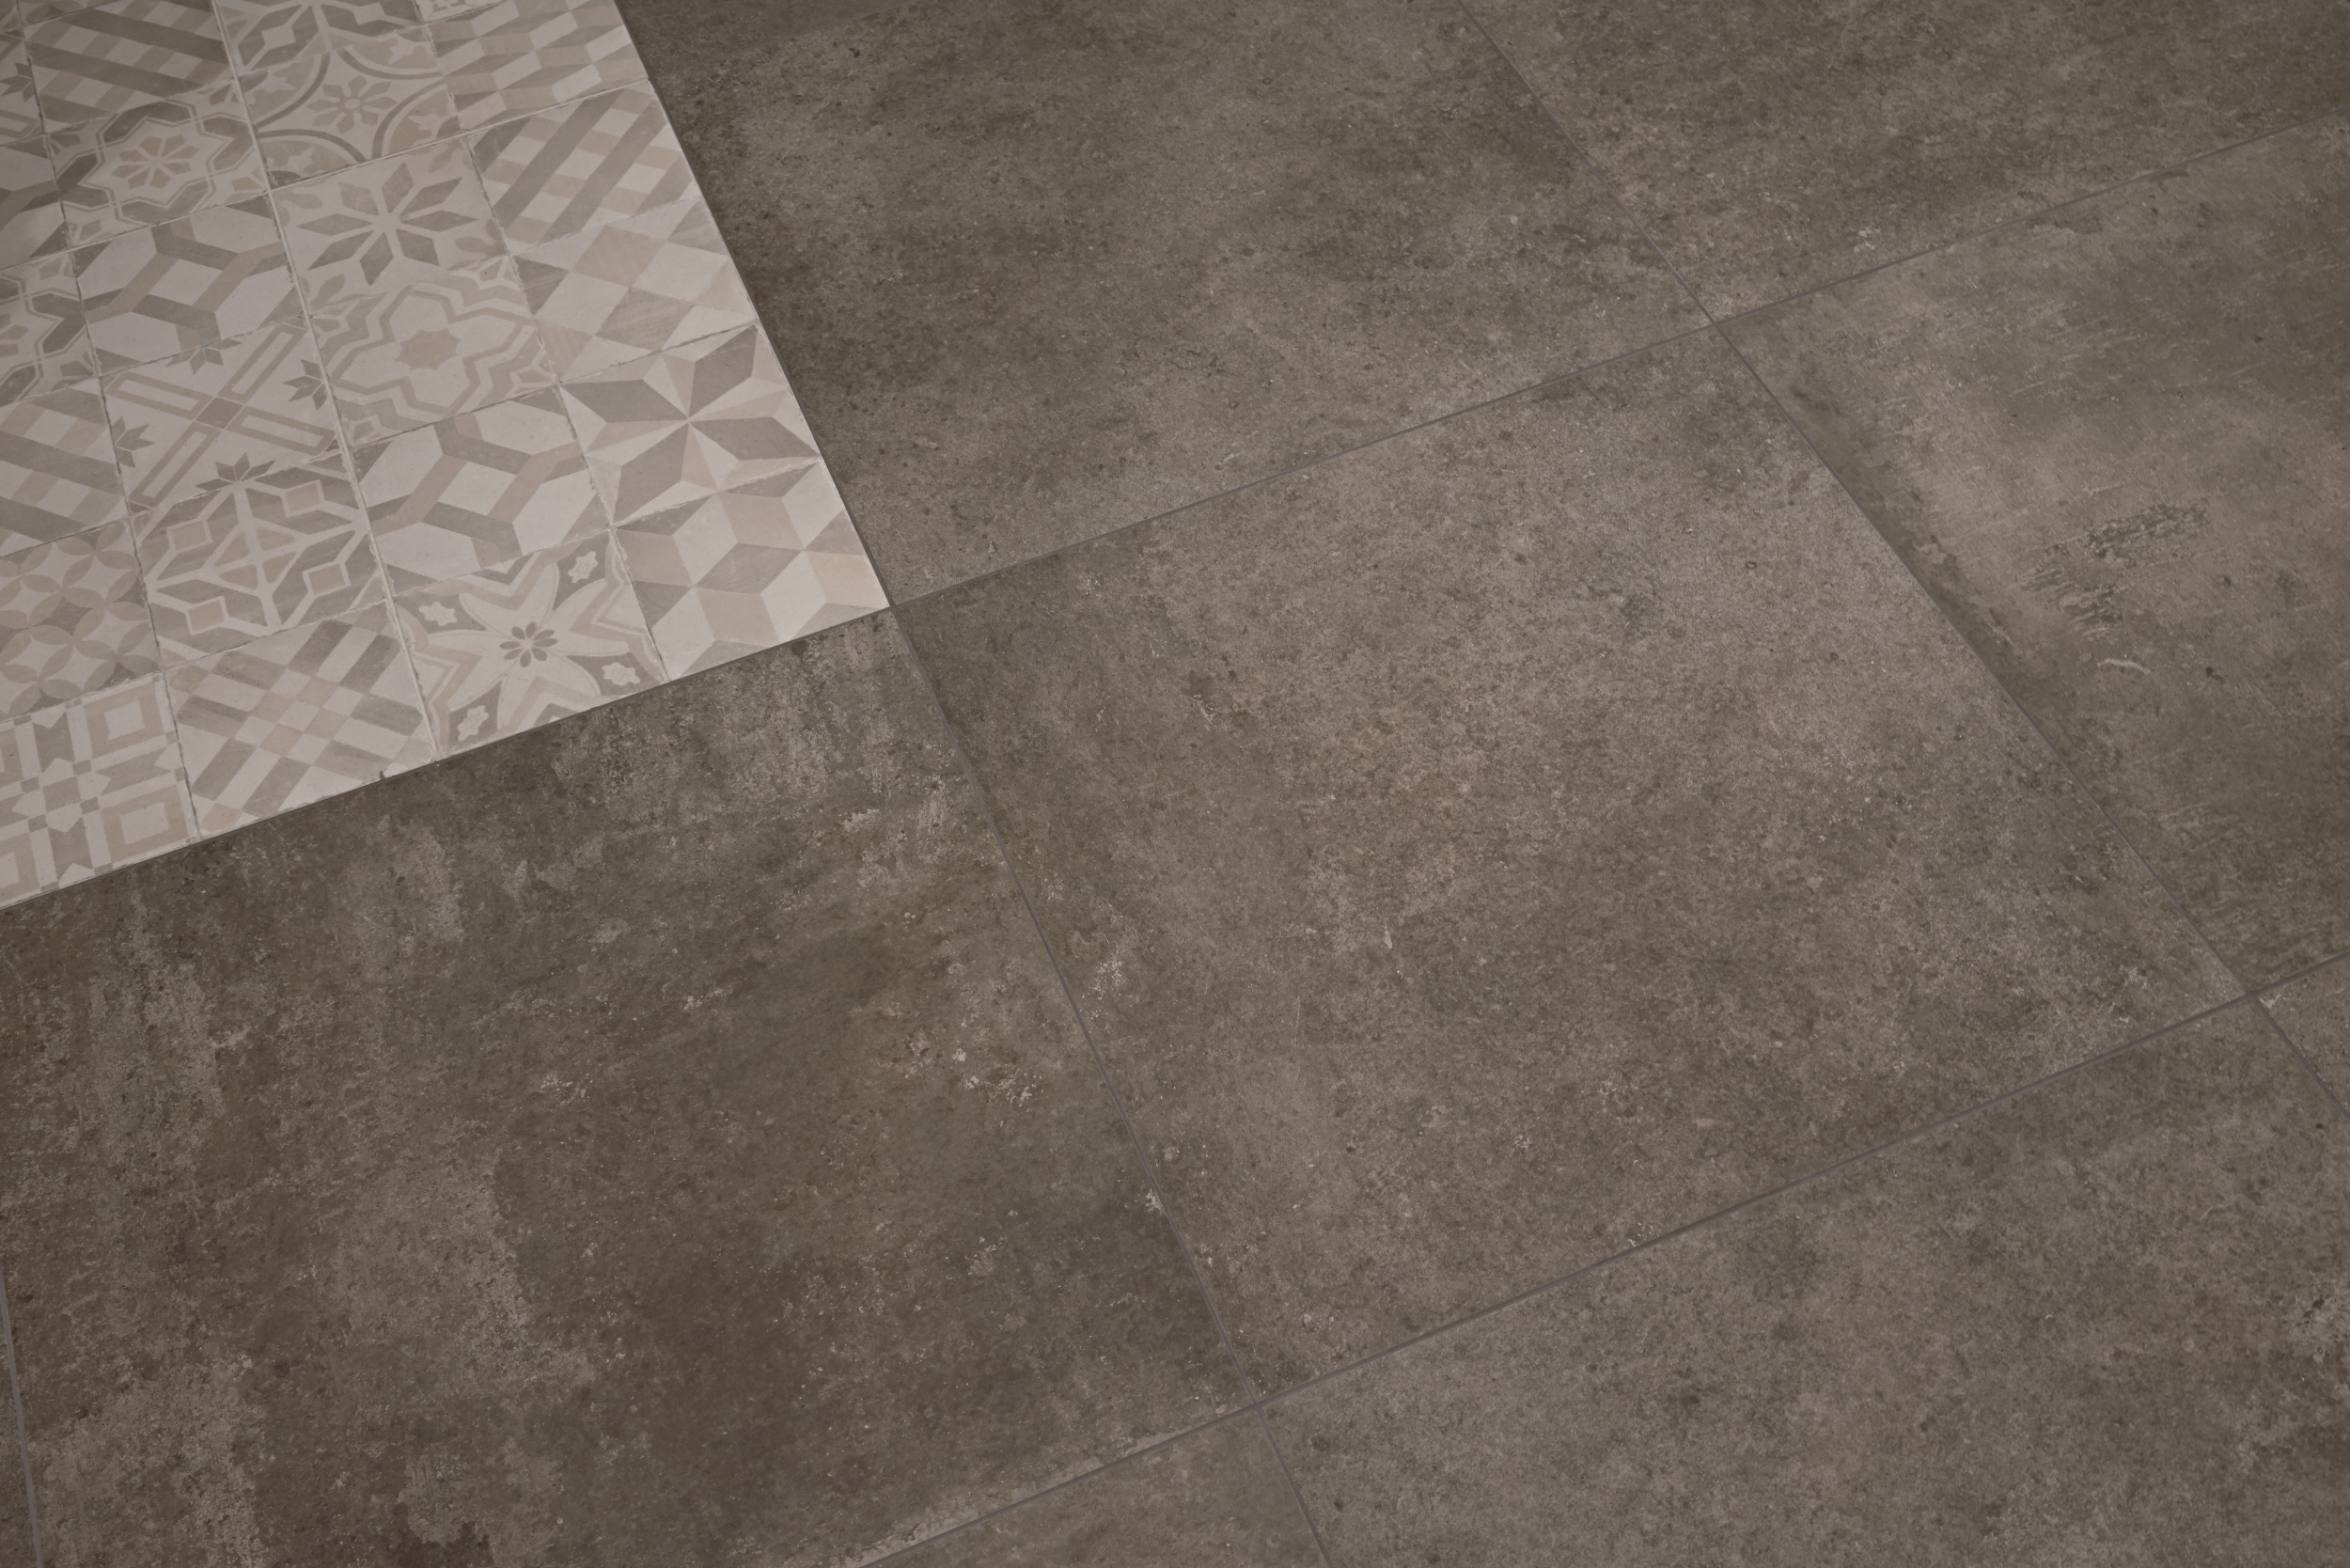 Mix Cold Natural Porcelain Tile From Our Heritage Tile